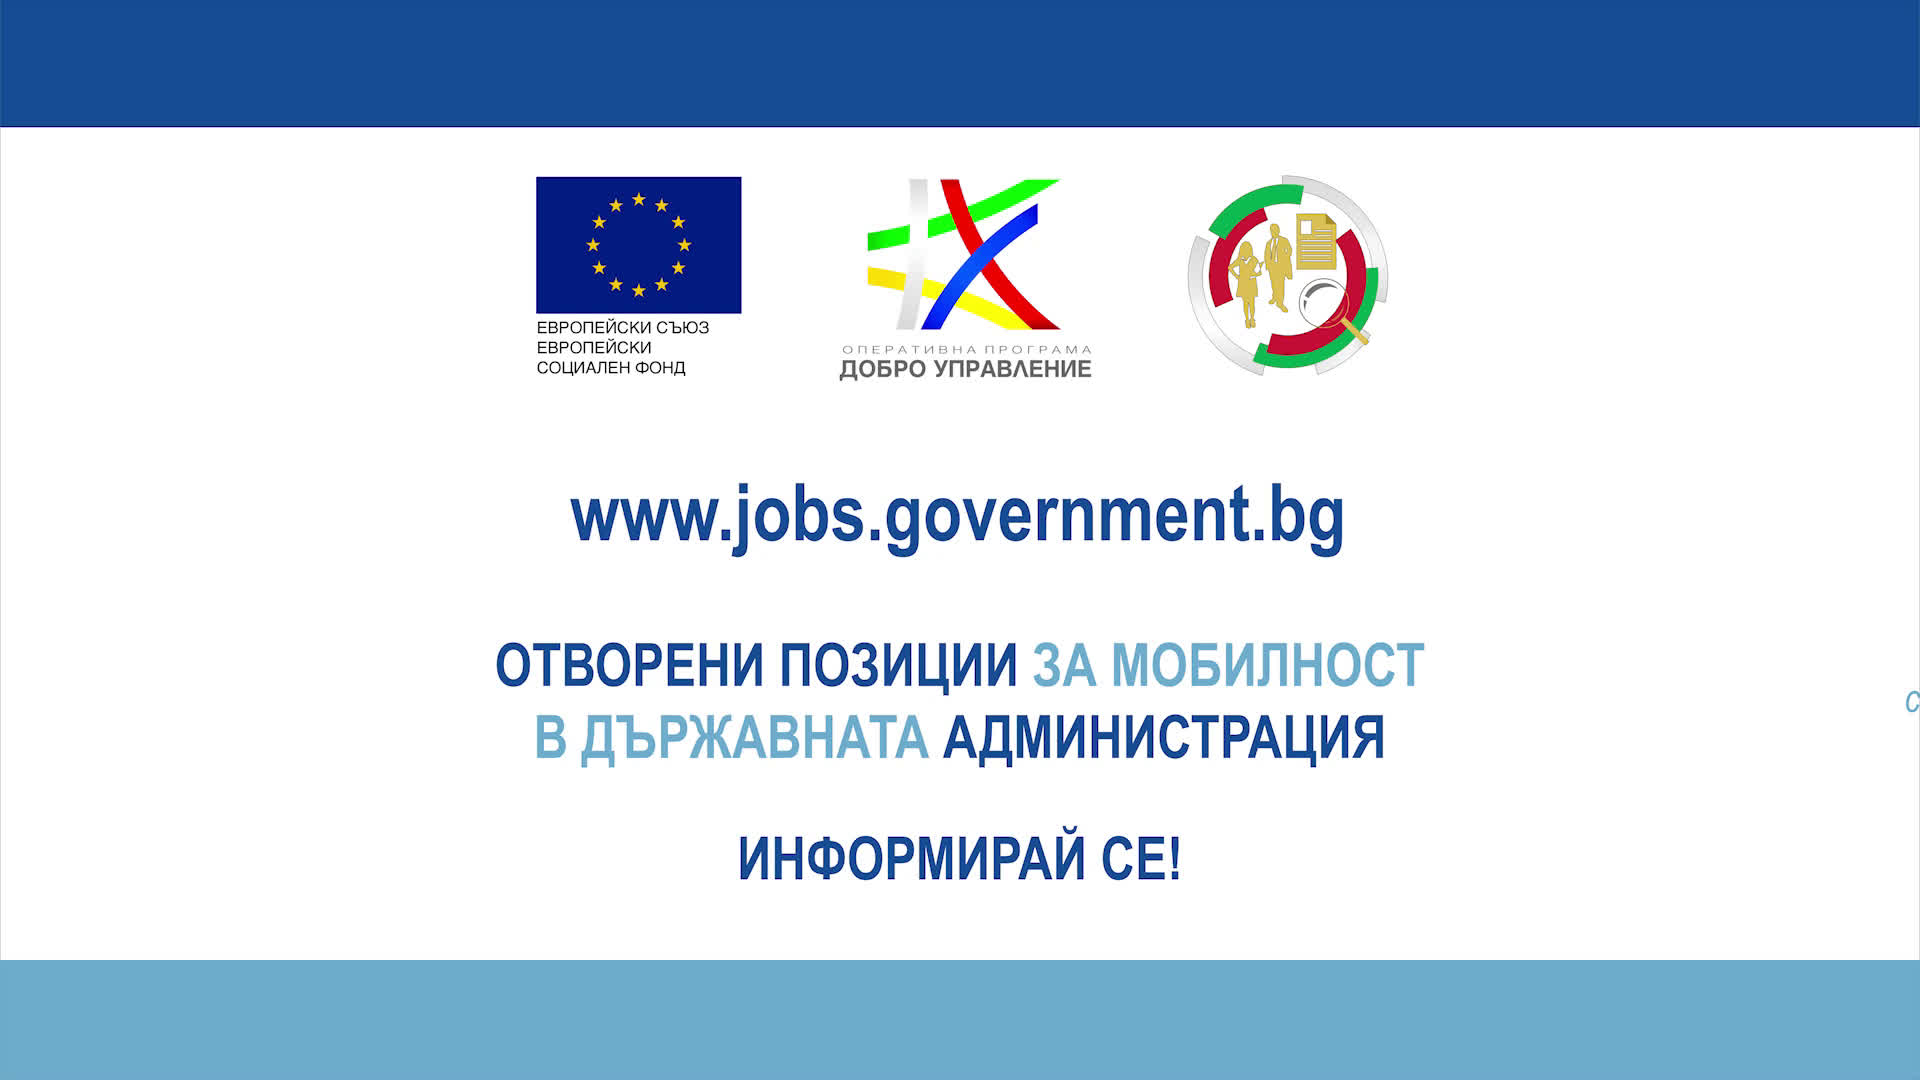 Jobs.government.bg